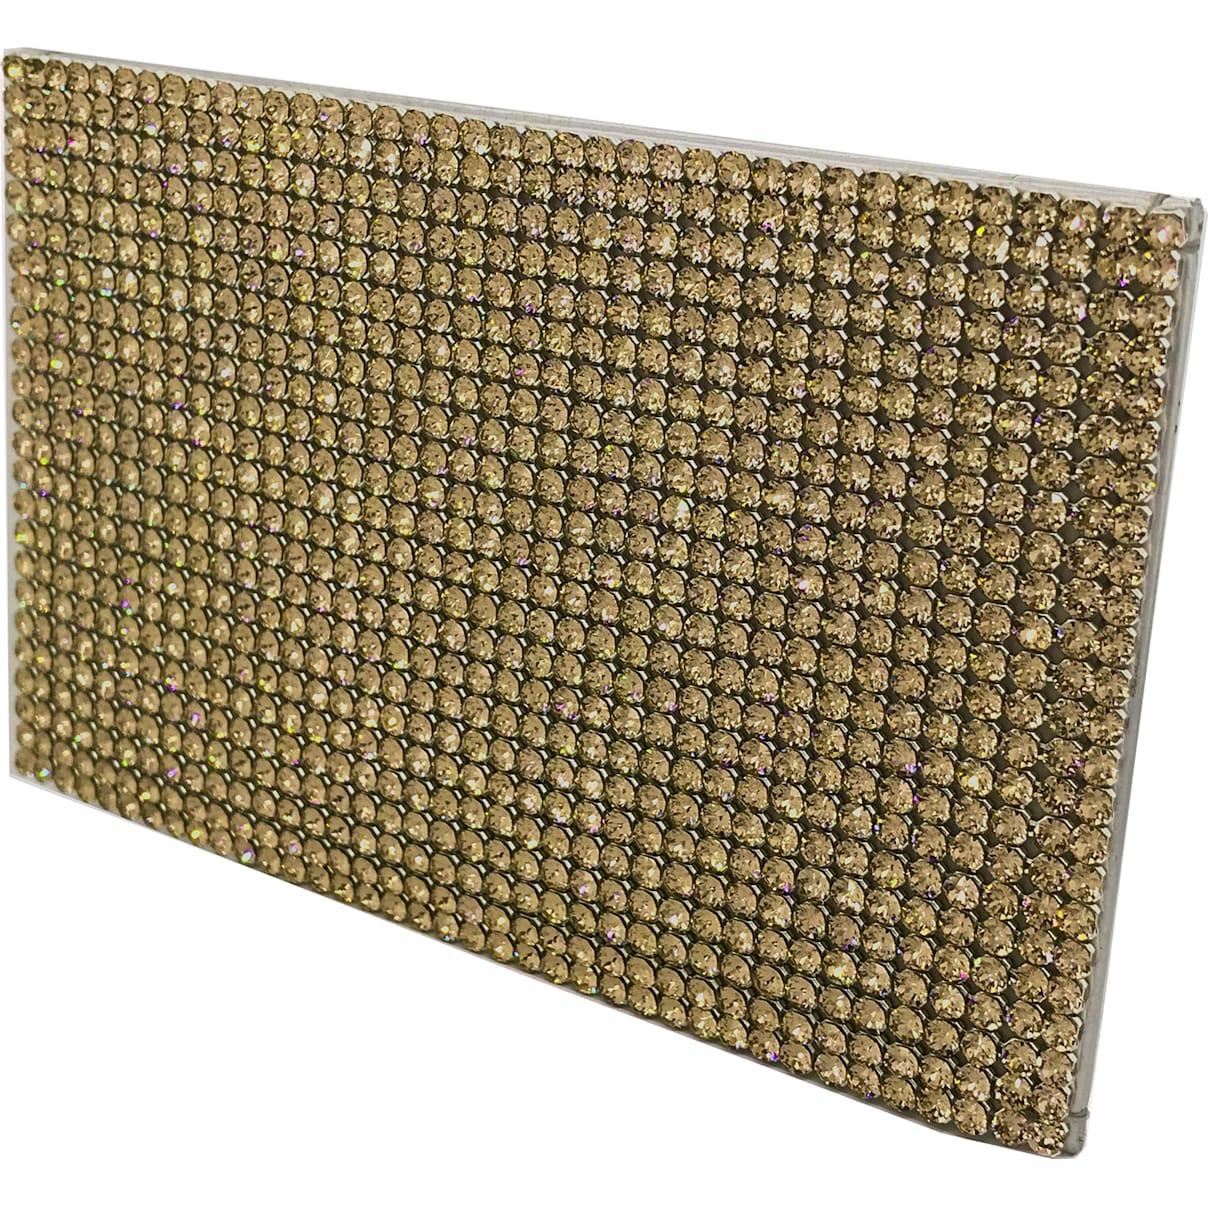 Swarovski Marina Card Holder, Golden